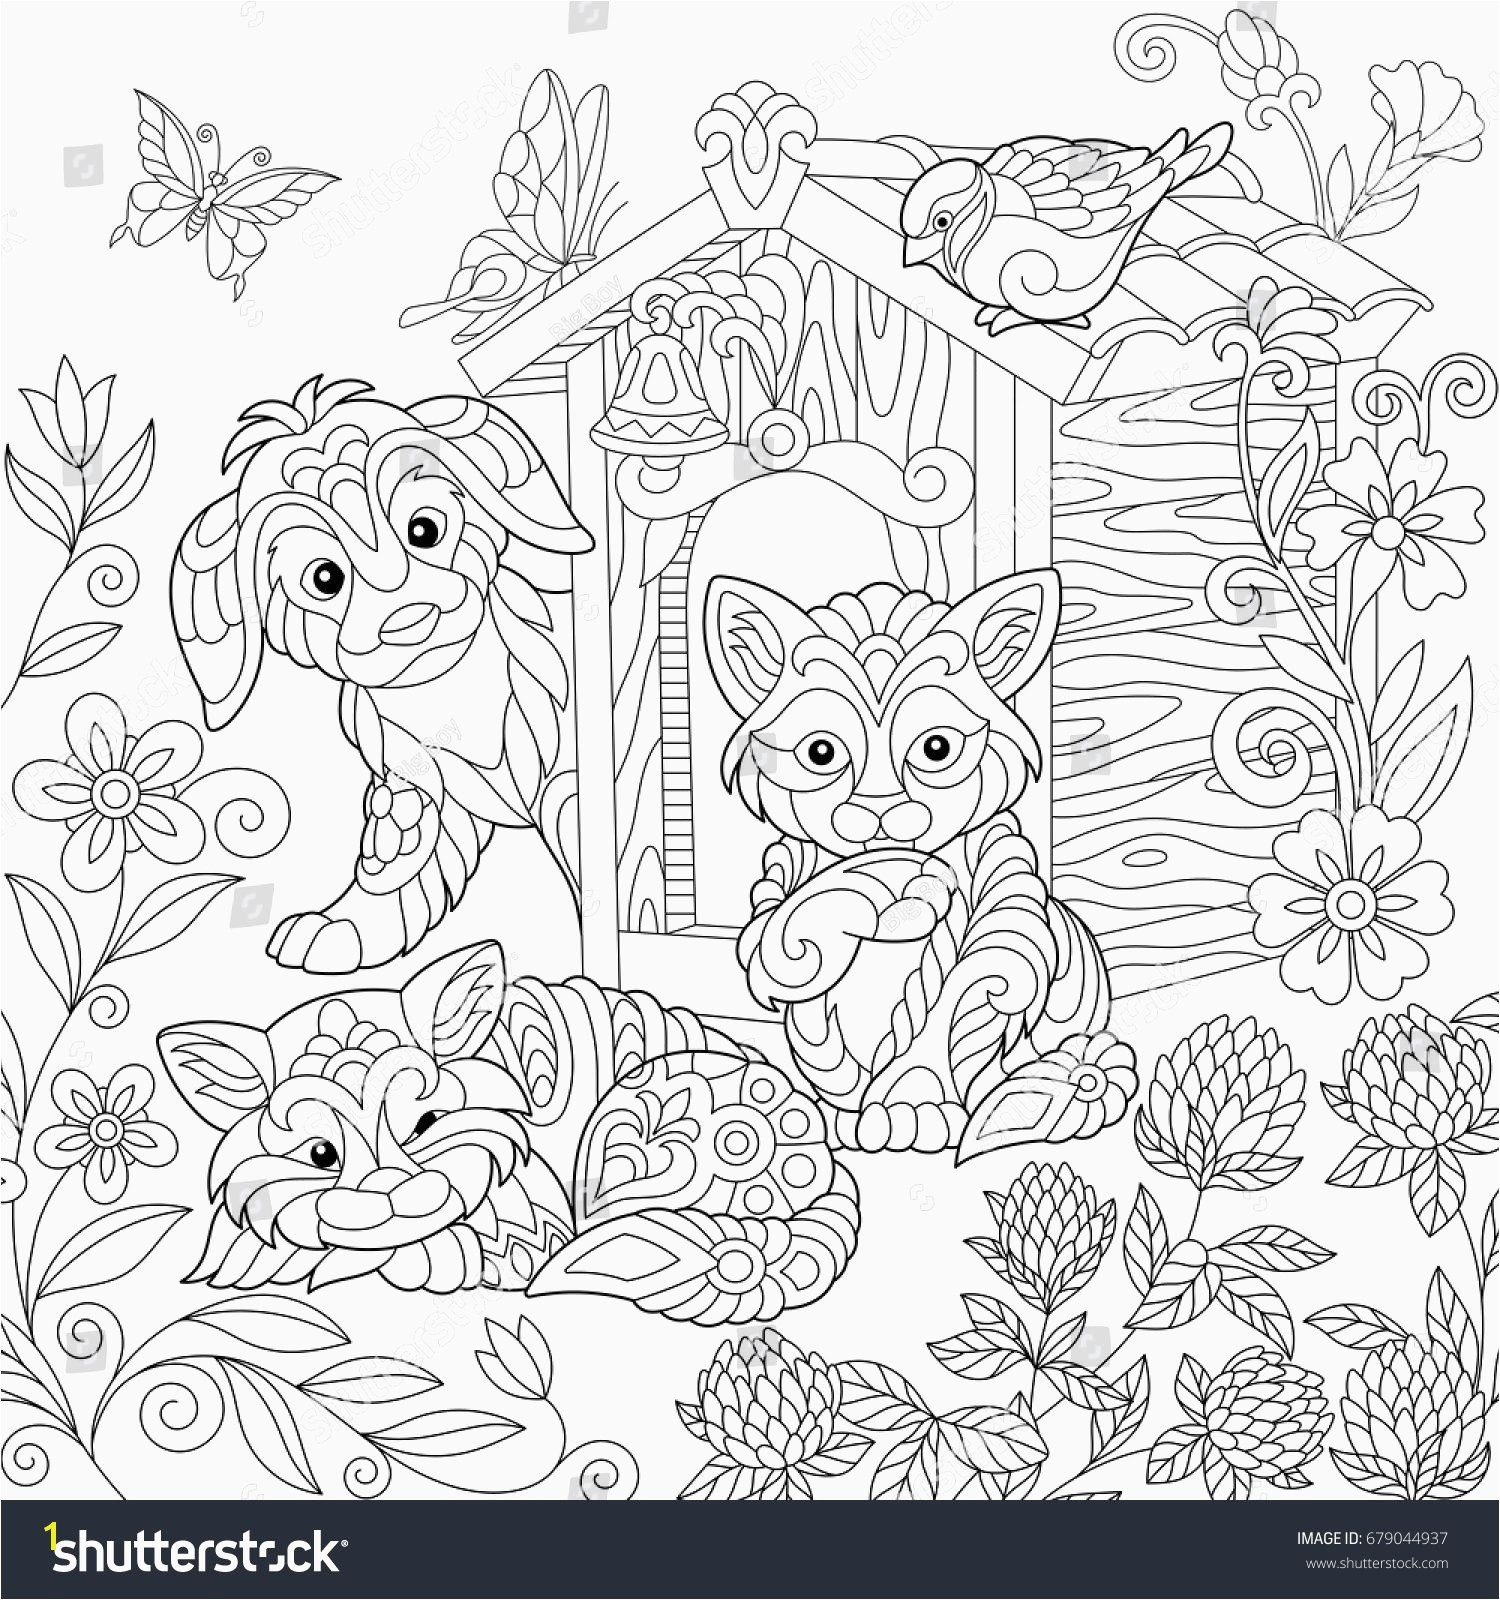 Walking Dead Coloring Pages  Printable 19e - Free For Children